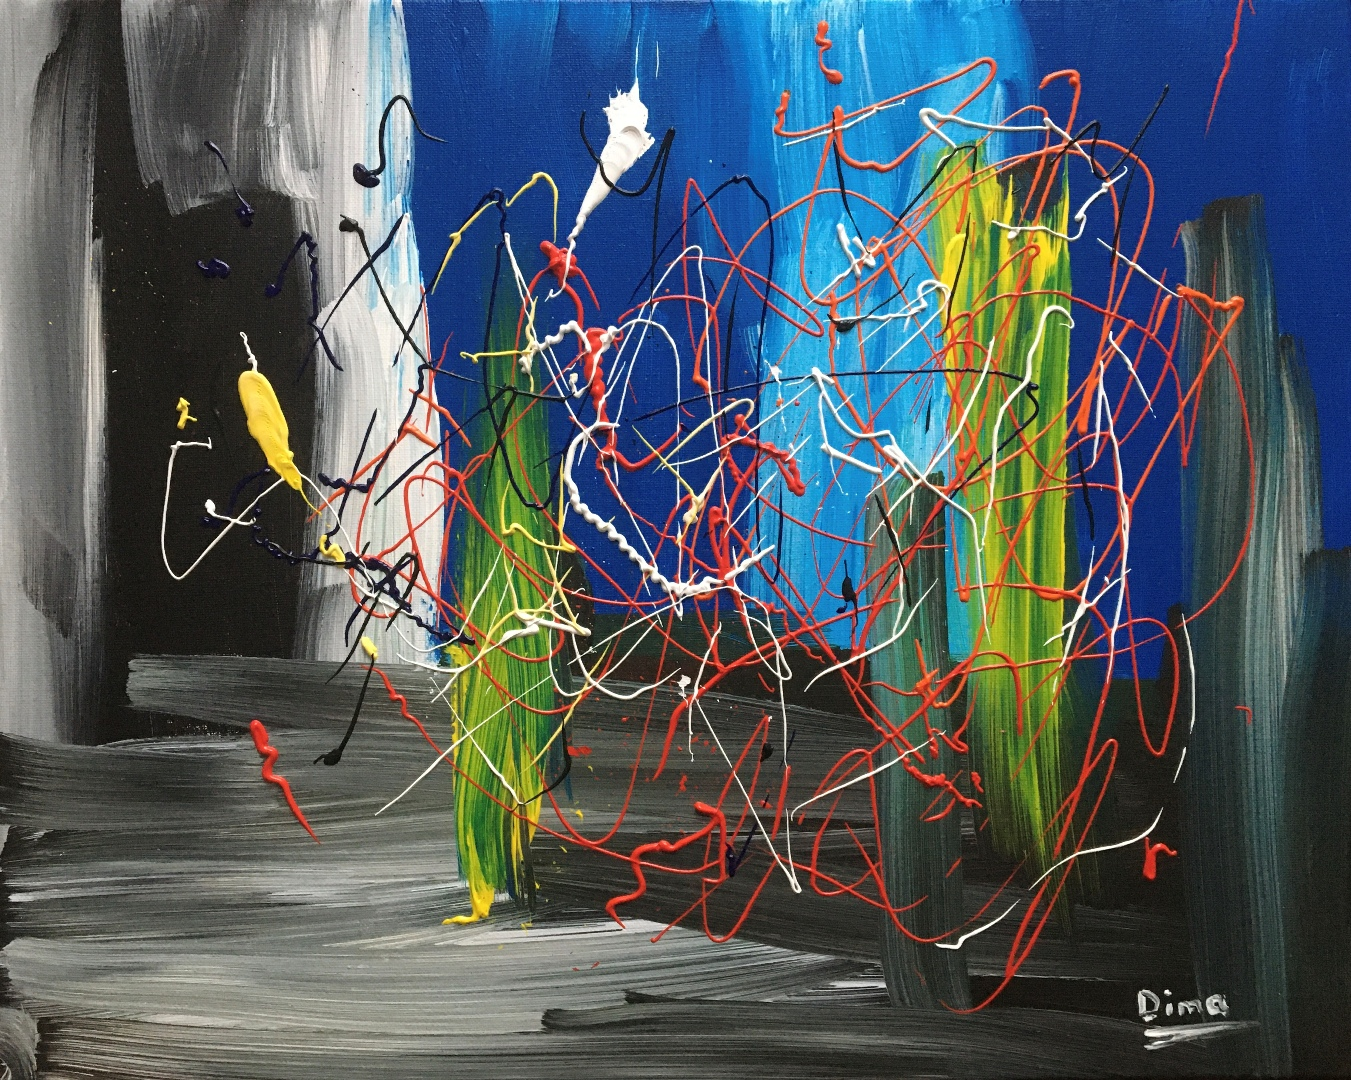 Abstract Drip Paintings by the Ukrainian Artist Dmytro Panchenko